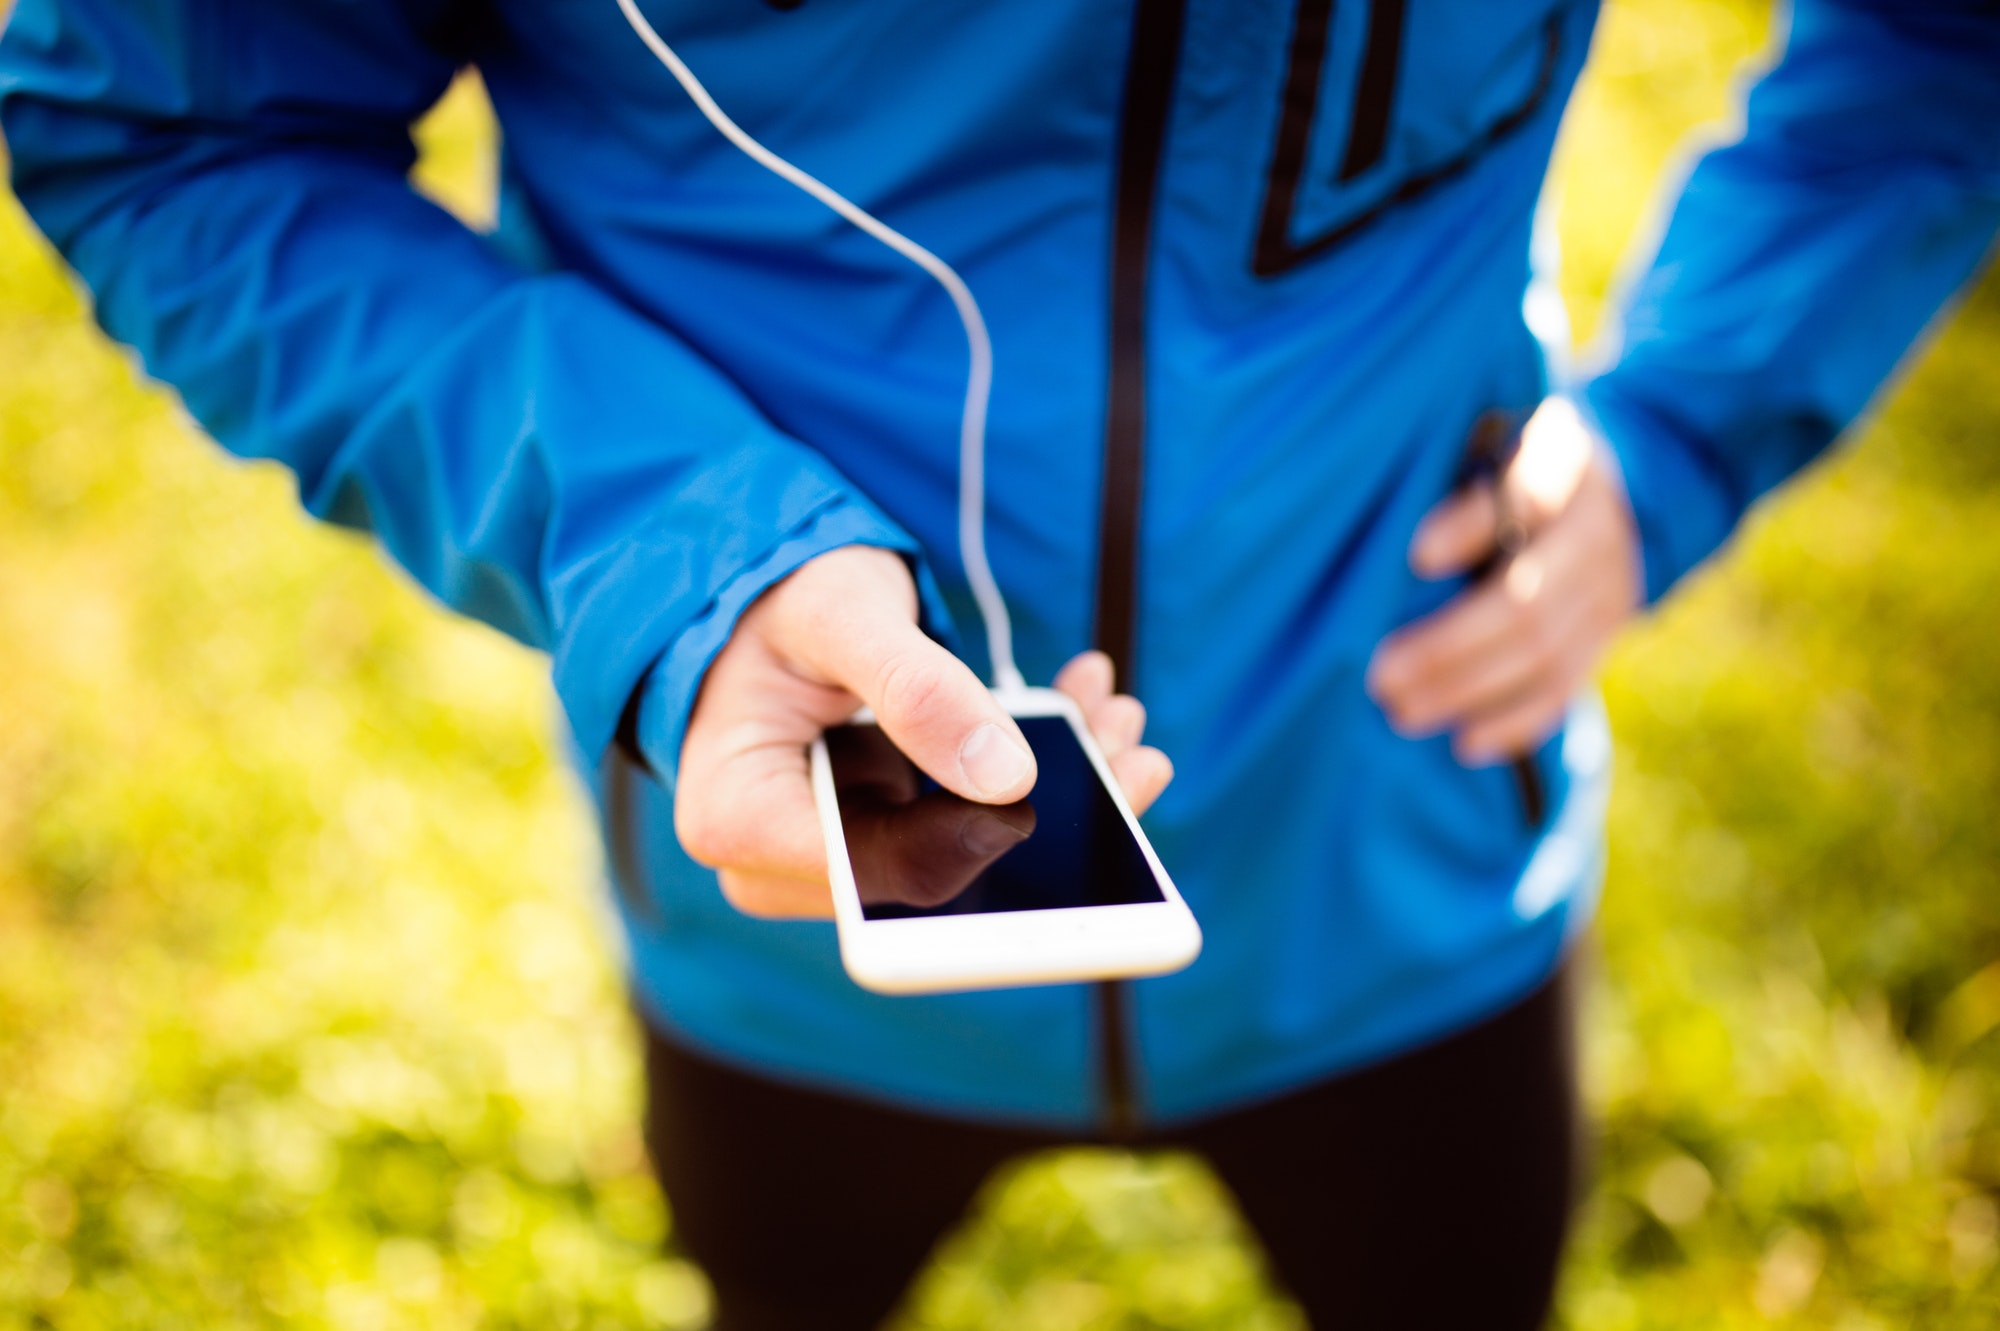 Unrecognizable runner with smart phone, using fitness app